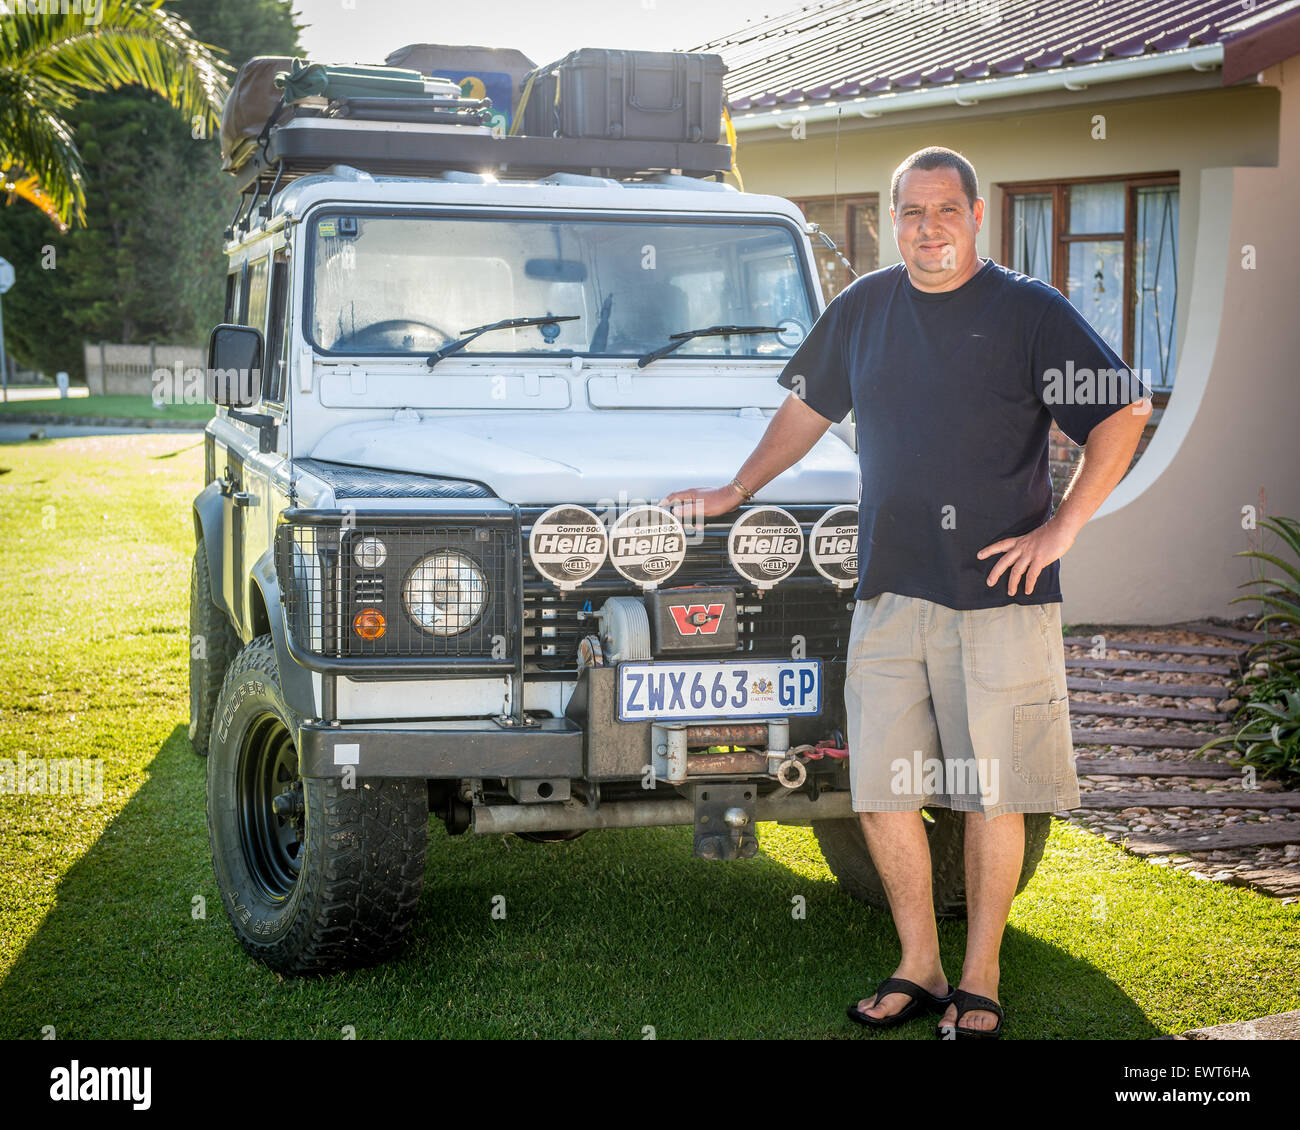 South Africa - Man standing in front of his Land Rover Defender 110